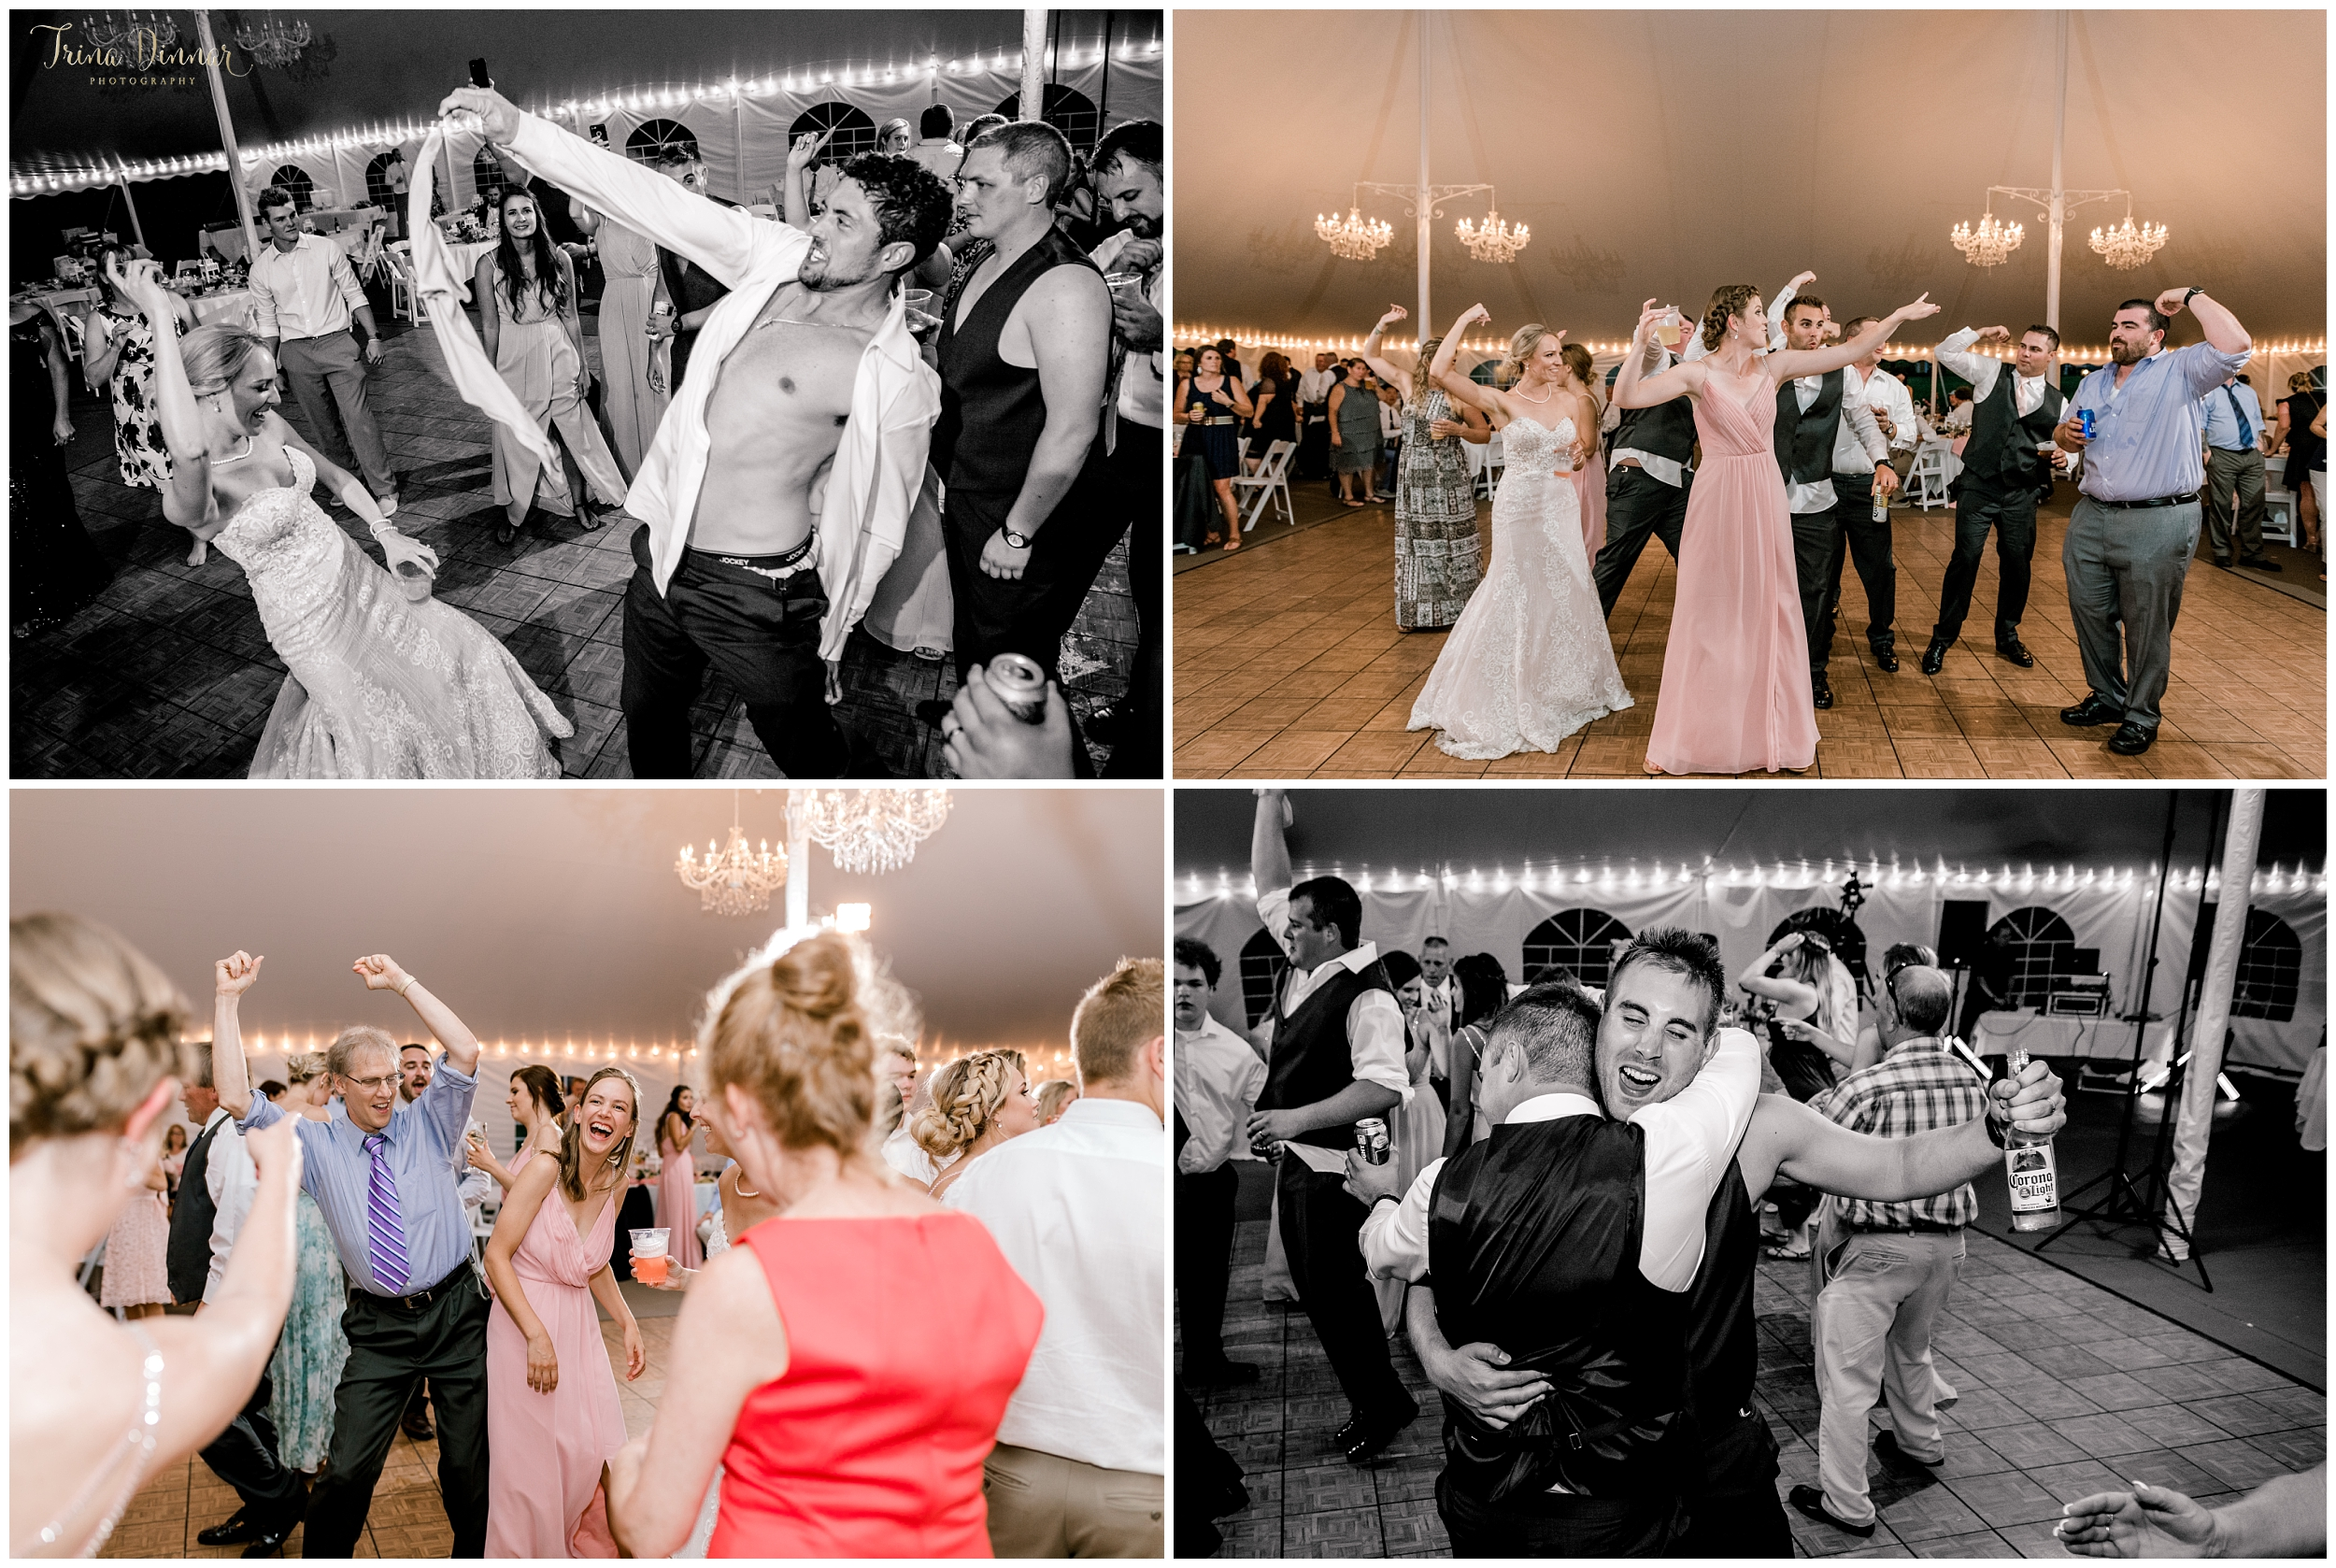 Dancing the night away at Falmouth CC in Maine